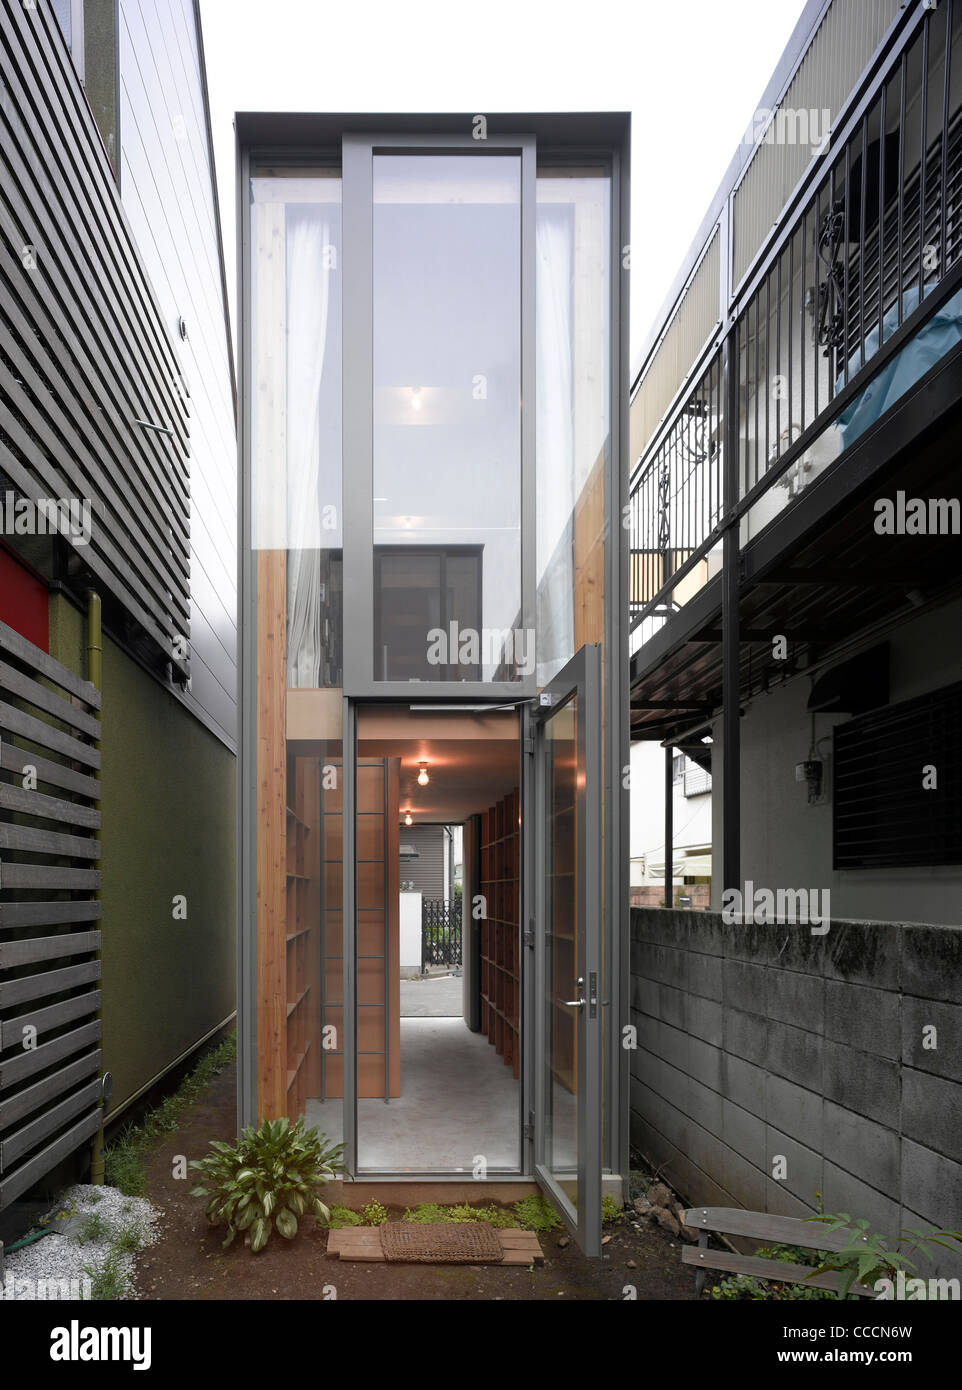 NEAR HOUSE, TOKYO, MOUNT FUJI ARCHITECTS 2010-VIEW FROM COURTYARD - Stock Image